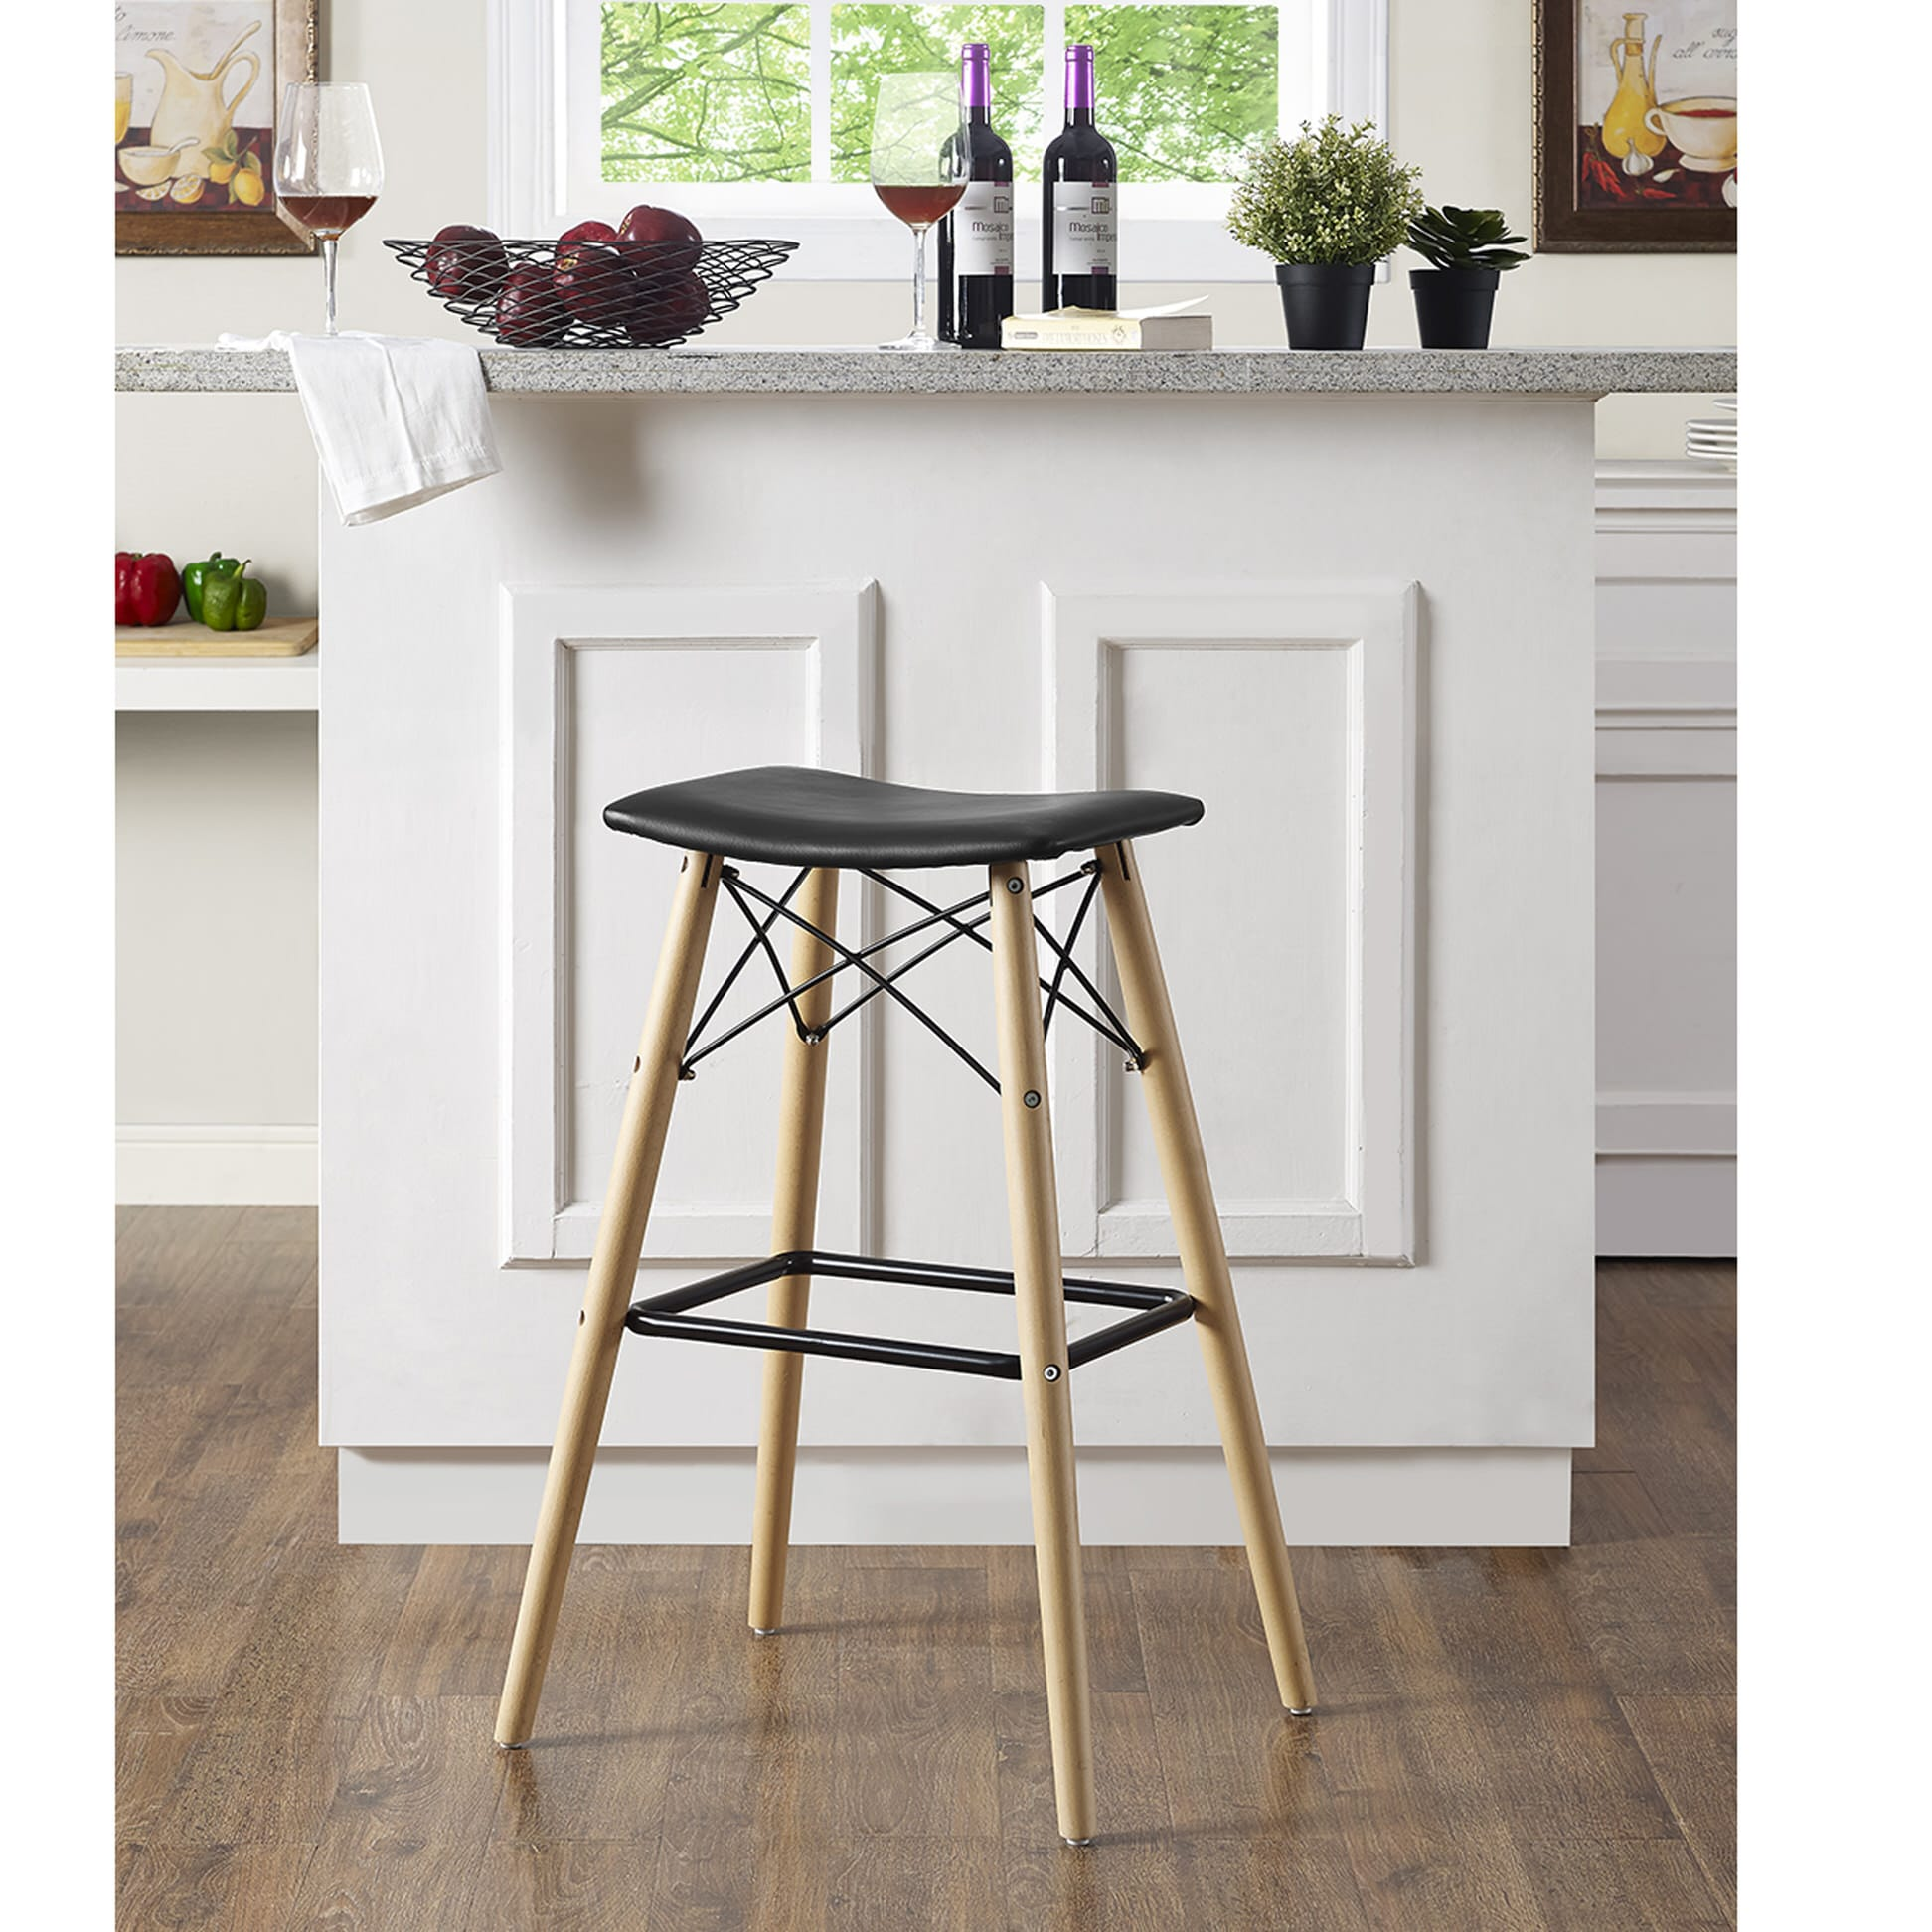 Astonishing Retro Modern Bar Stool Black By Walker Edison Ocoug Best Dining Table And Chair Ideas Images Ocougorg